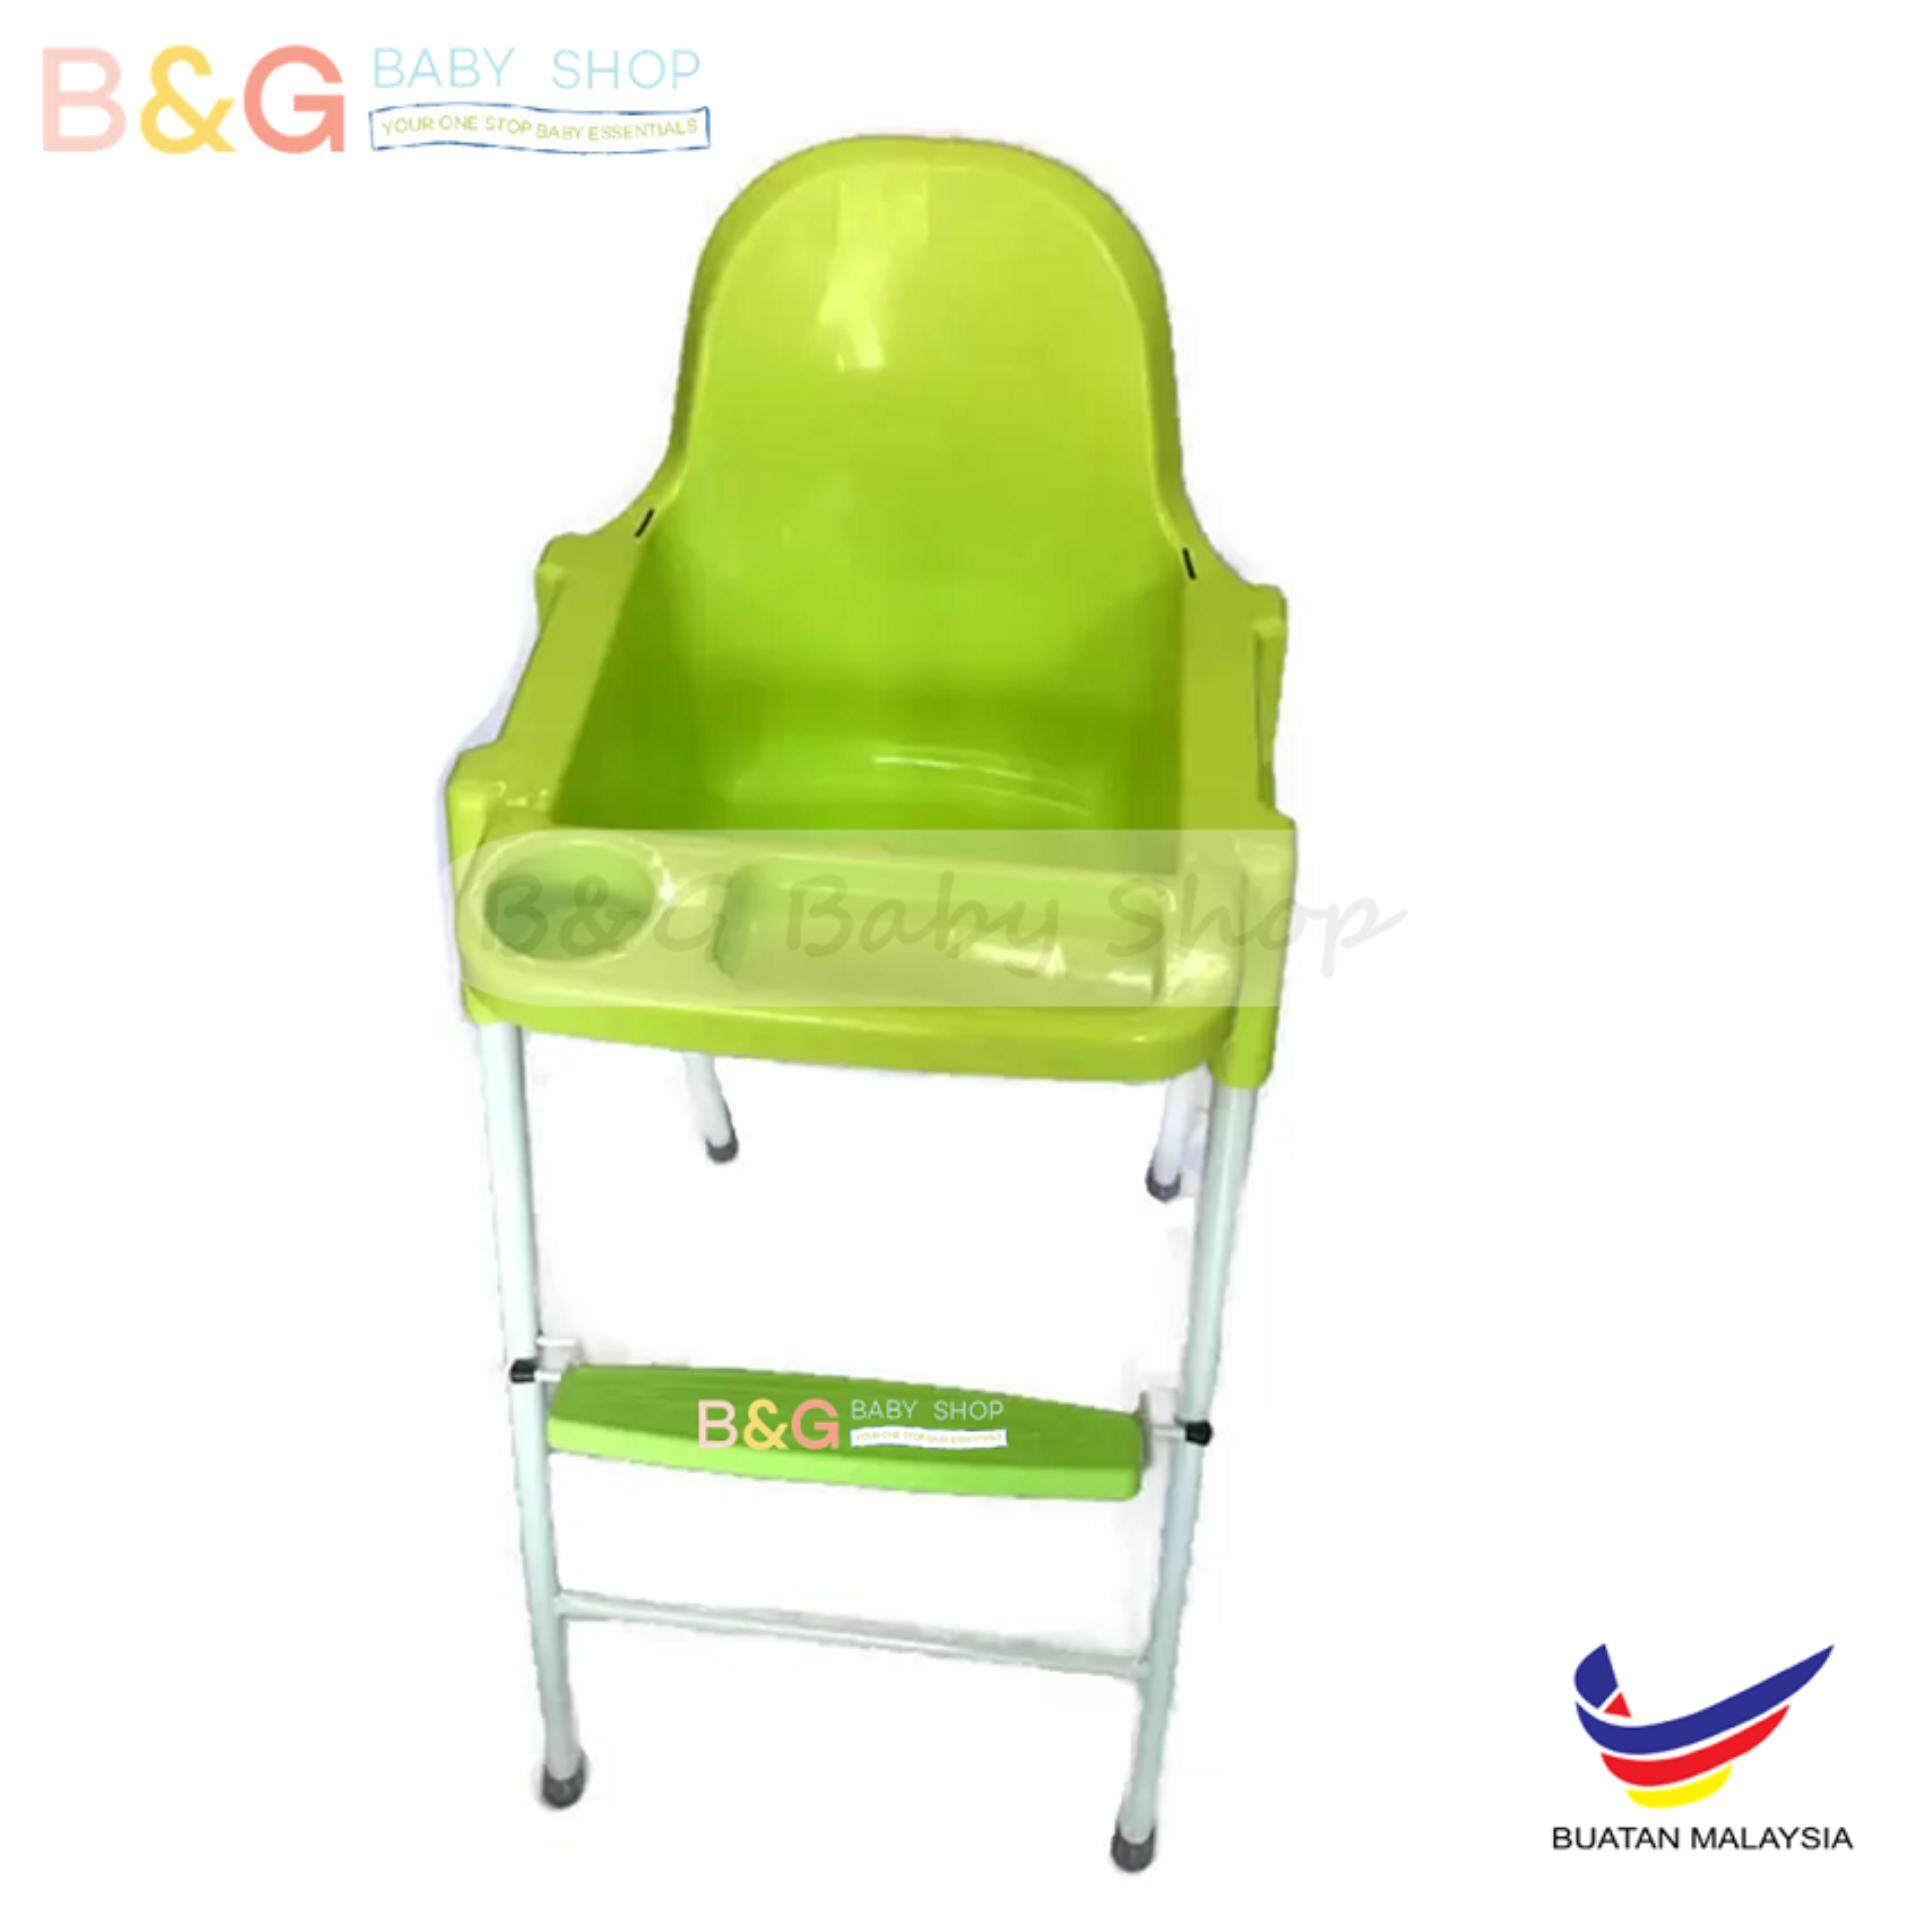 Baby eating chair attached to table - Bg Baby Local Premium Baby High Chair Green Colour Resturant Infant Feeding Baby High Chair